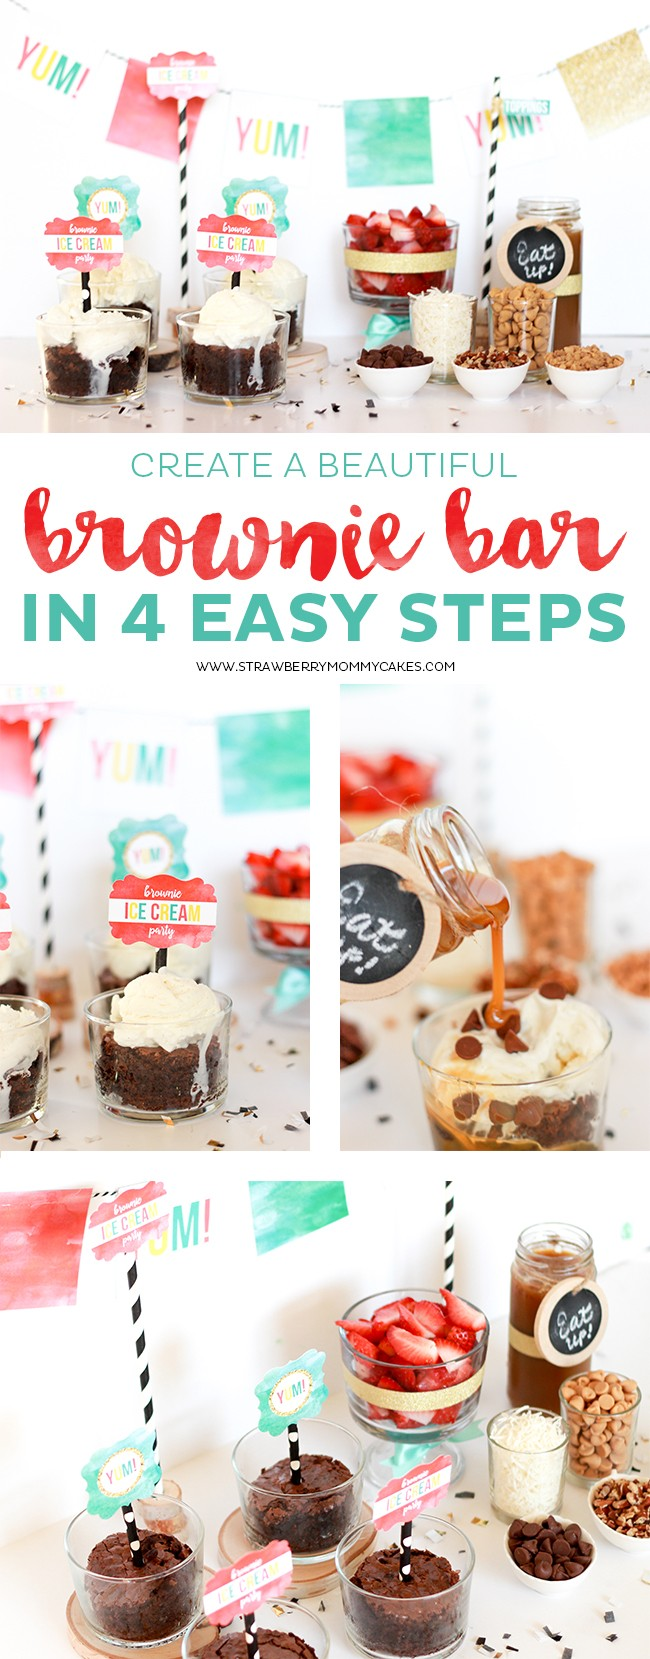 Create a Beautiful Brownie Bar in 3 Easy Steps!